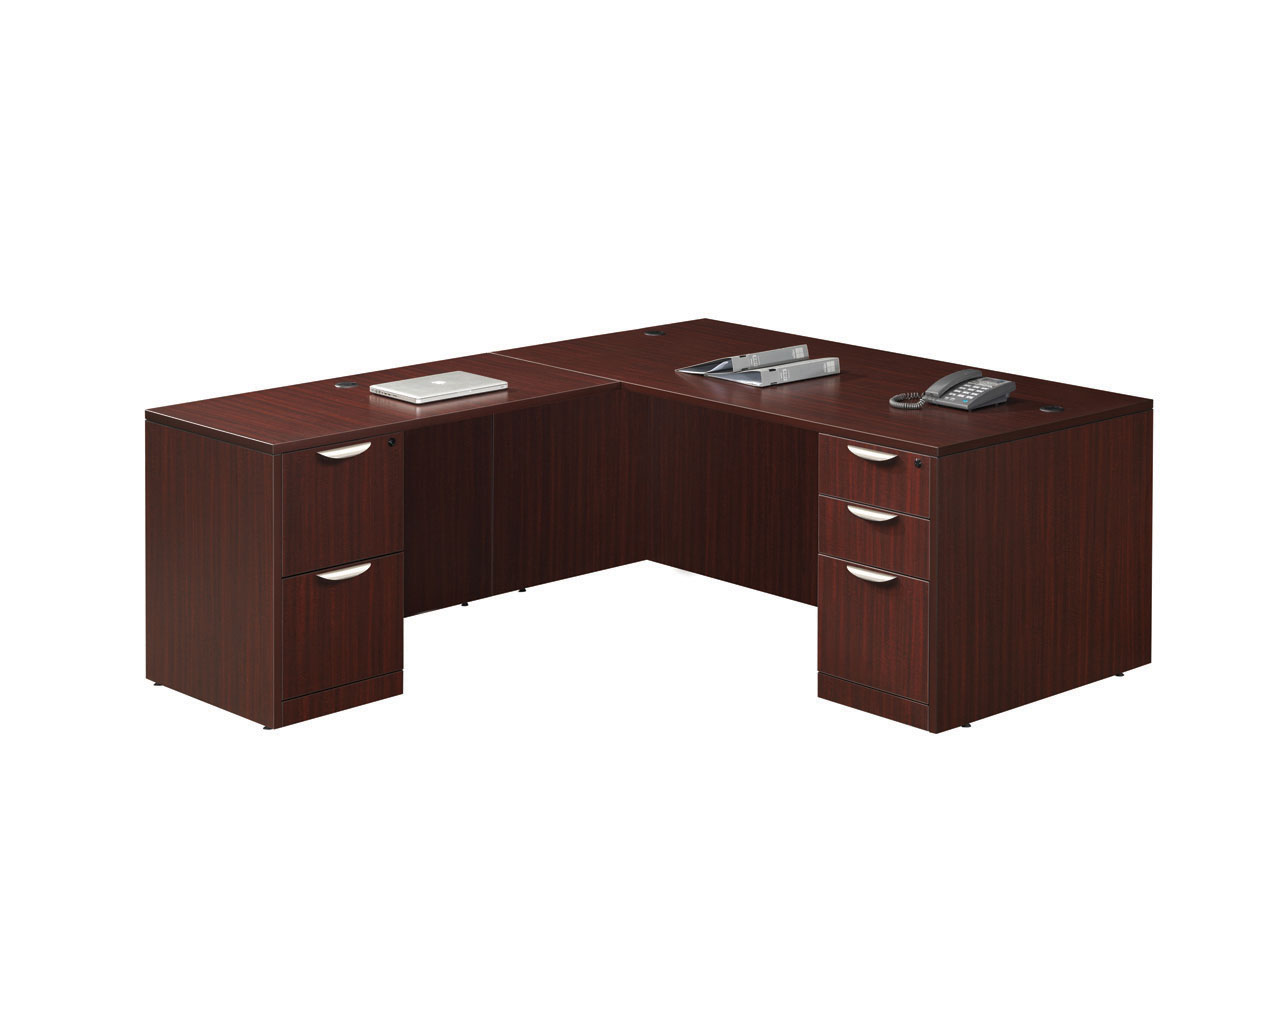 Desk Return Classic Computer Desk Package With Return And Two Pedestal